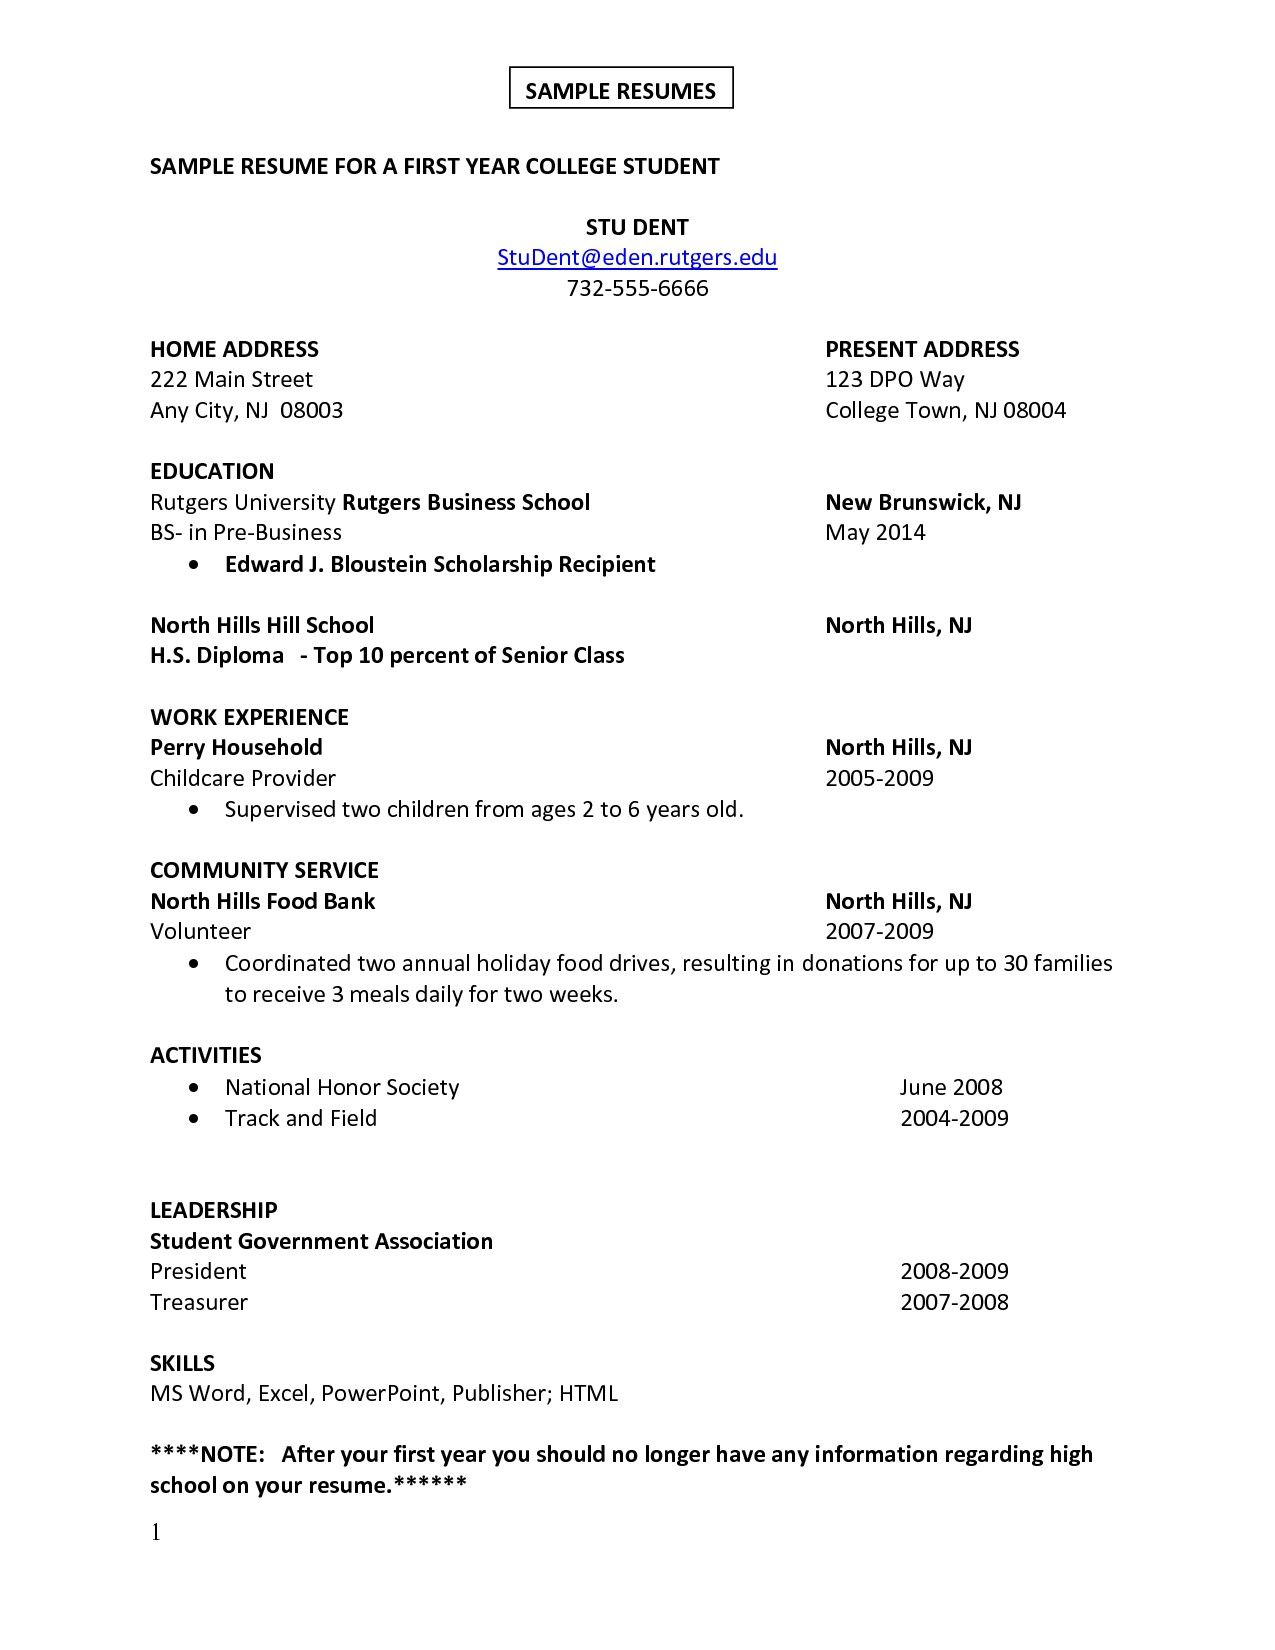 First Time Job Resume Template Example Of Job Resume. A Good Resume Example  Resume Cover Letter .  Examples Of Good Resumes For College Students